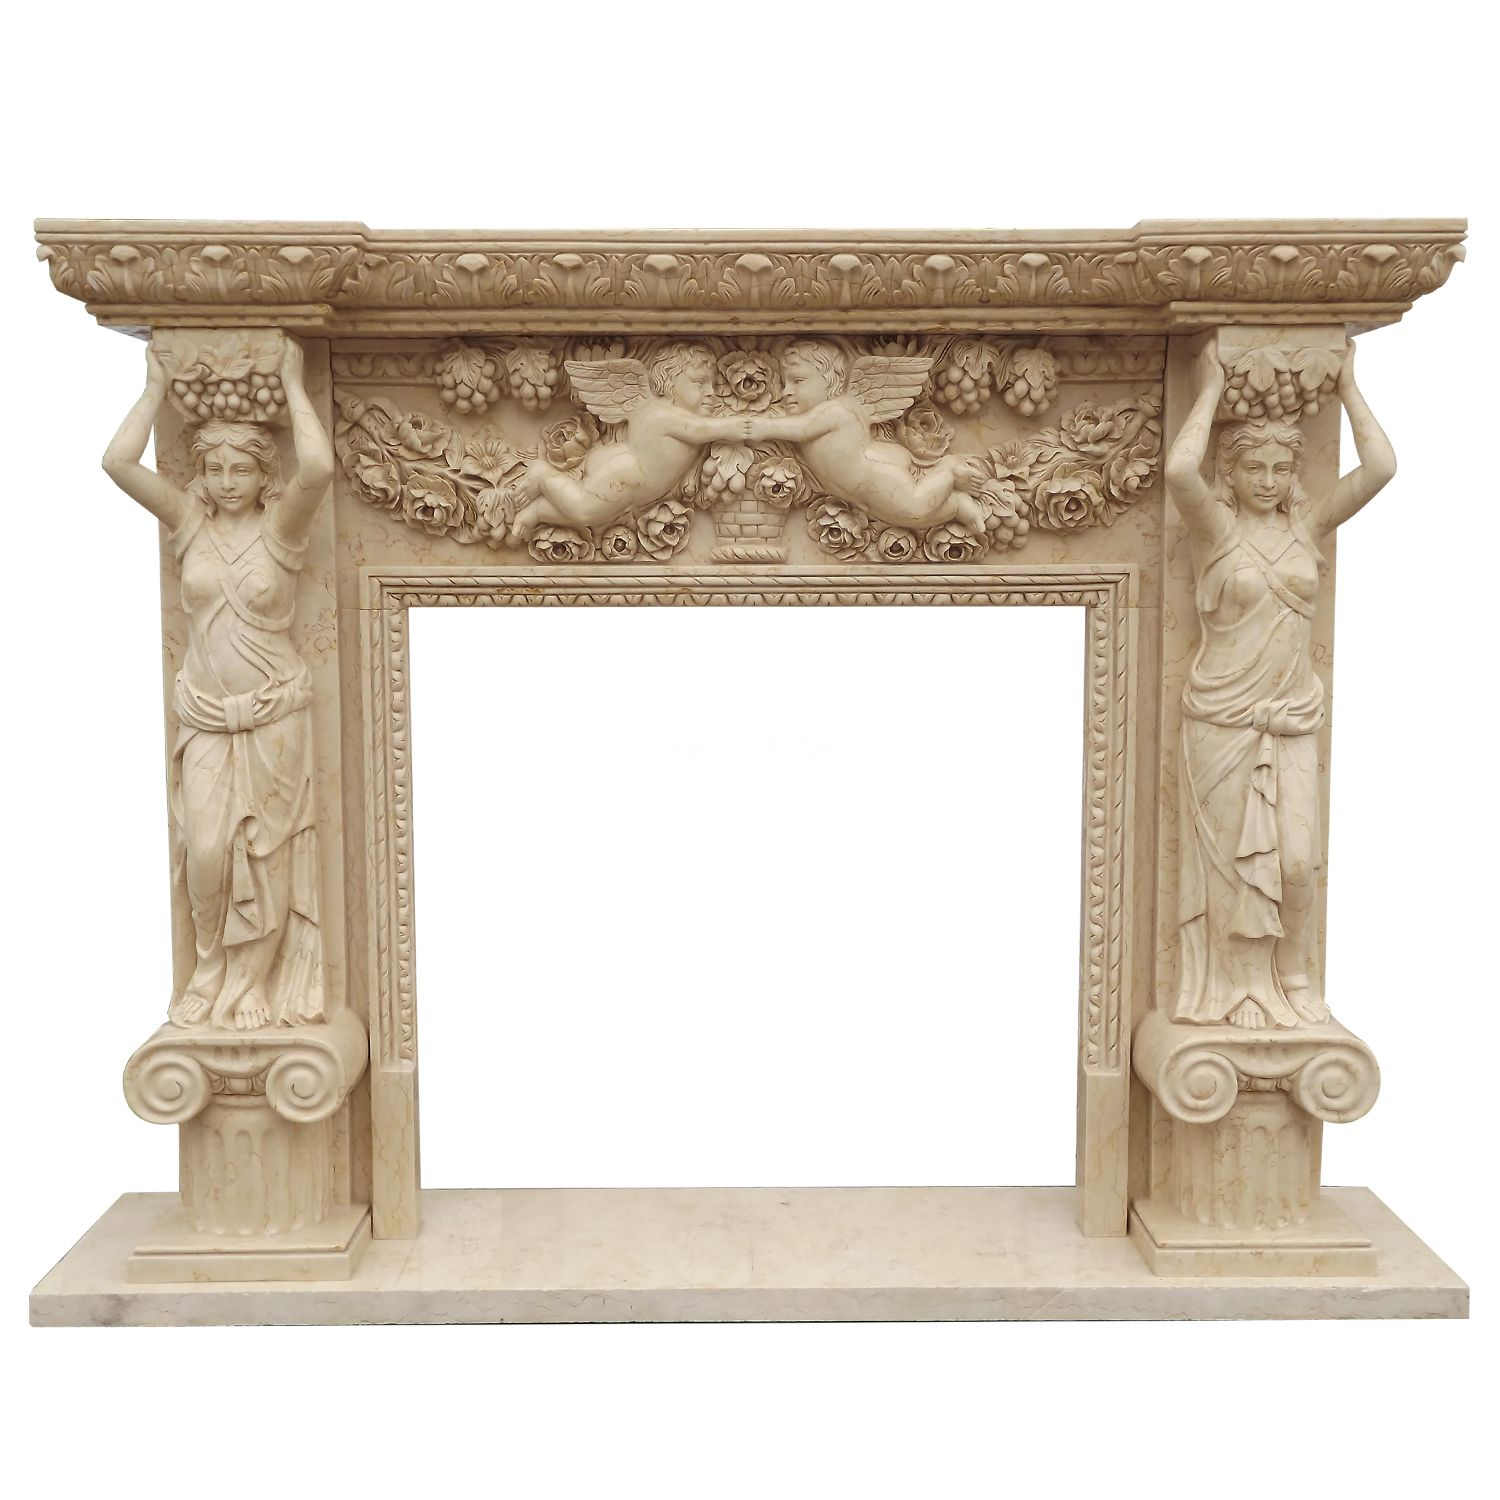 Marble Stone Fireplace Mantel with Woman Statues